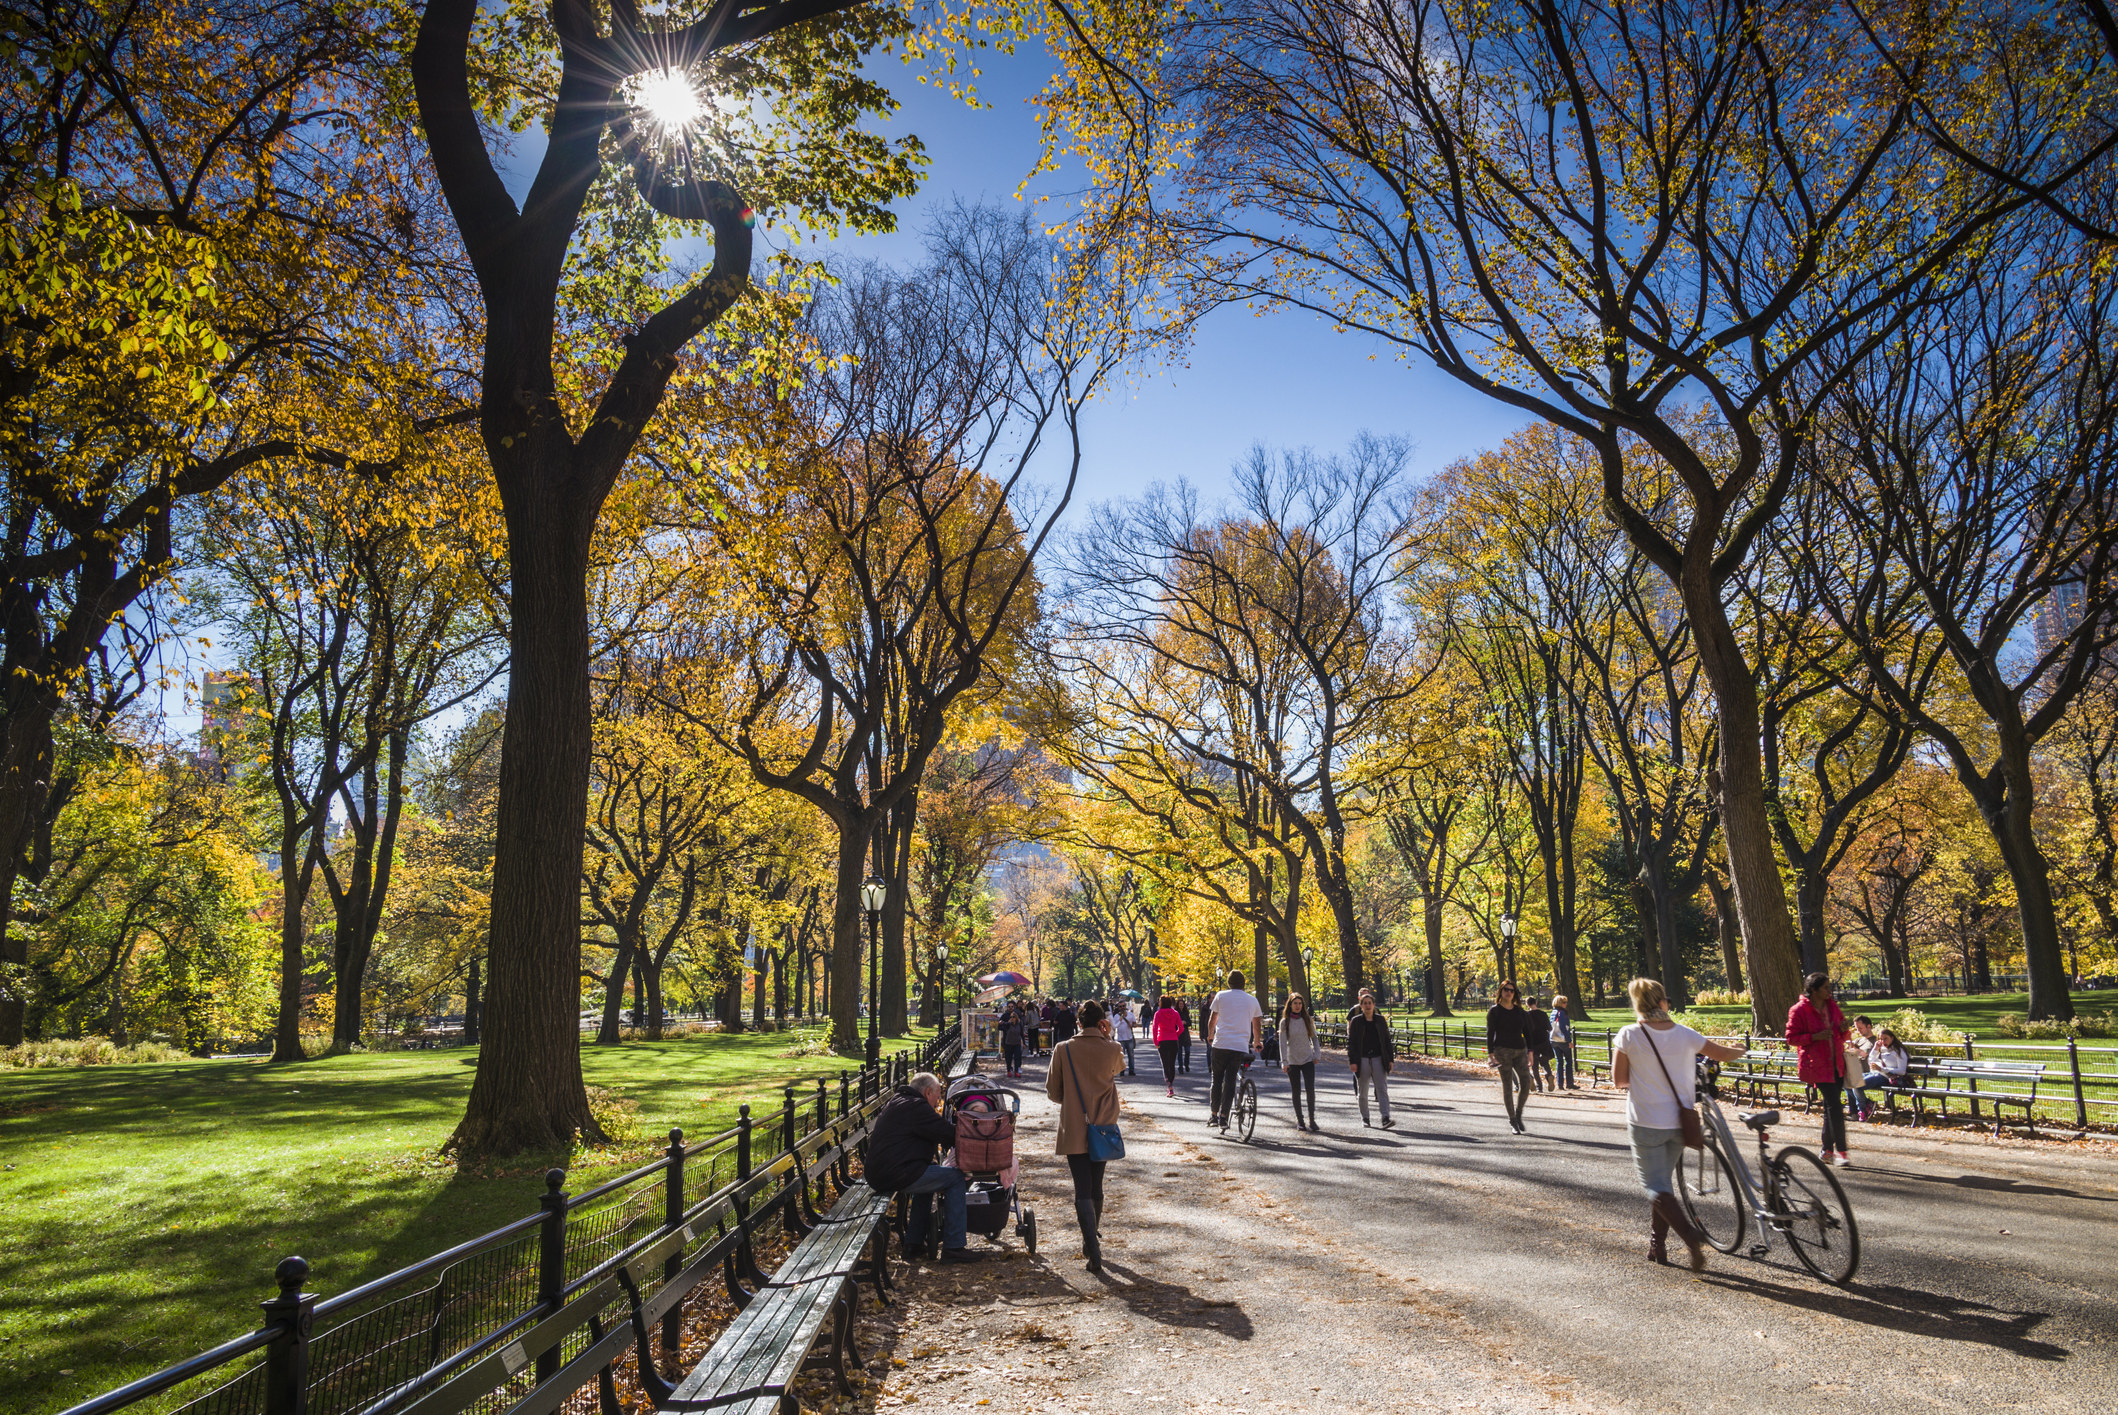 People walking in Central Park on a sunny day.